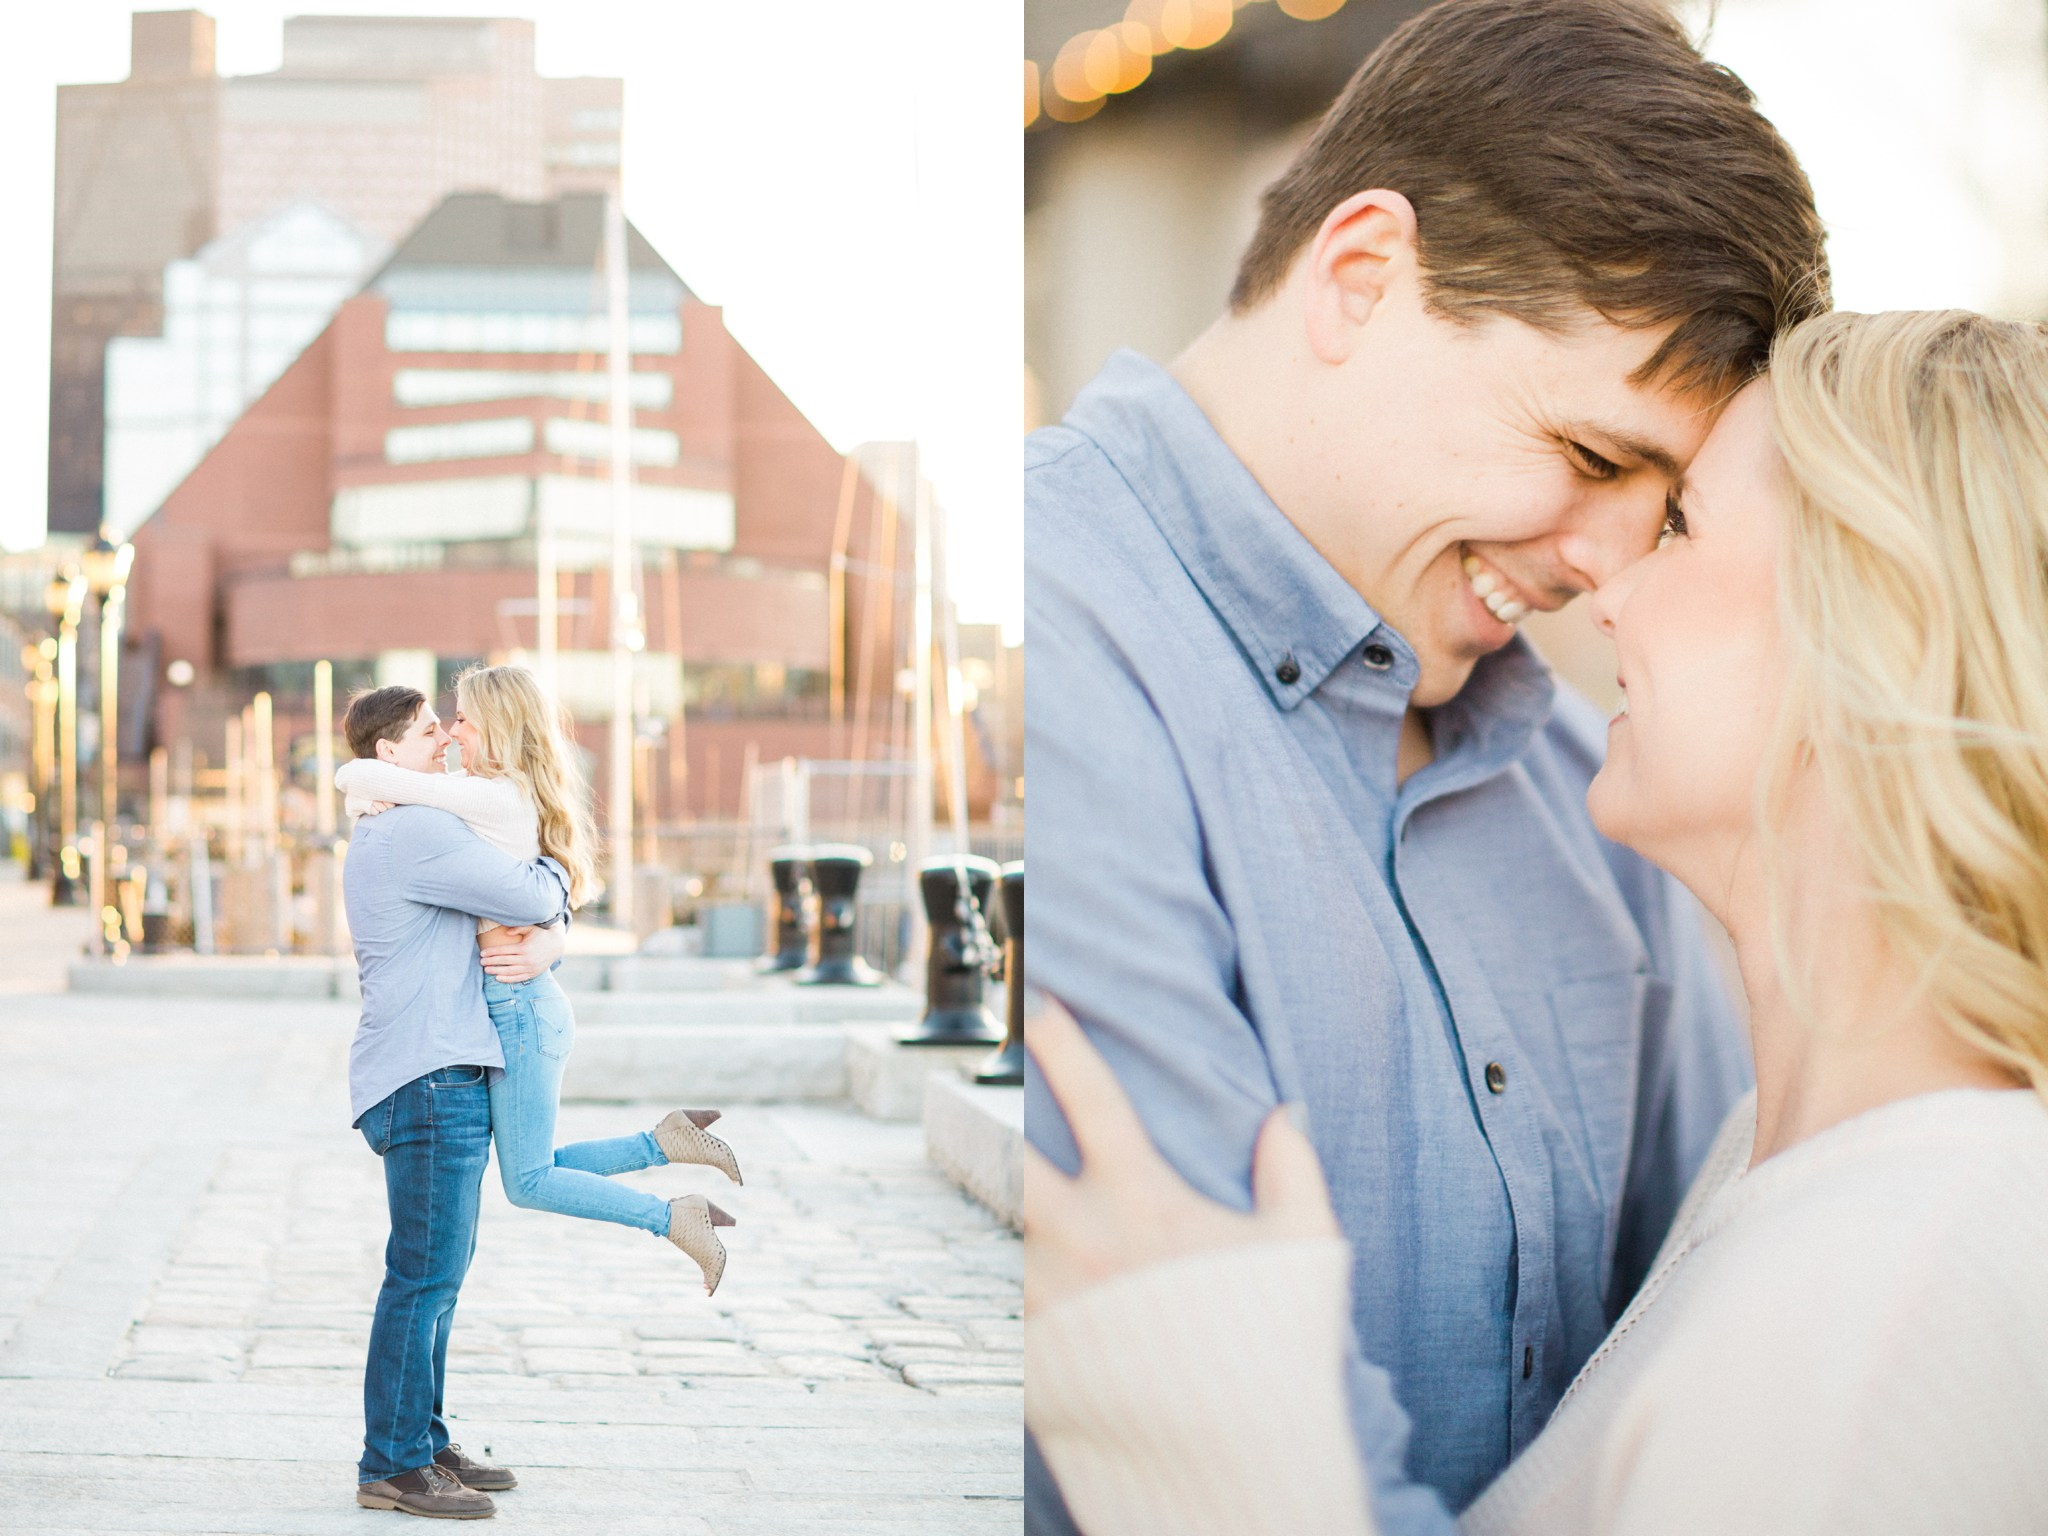 boston_engagement_session_deborah_zoe_00007.JPG